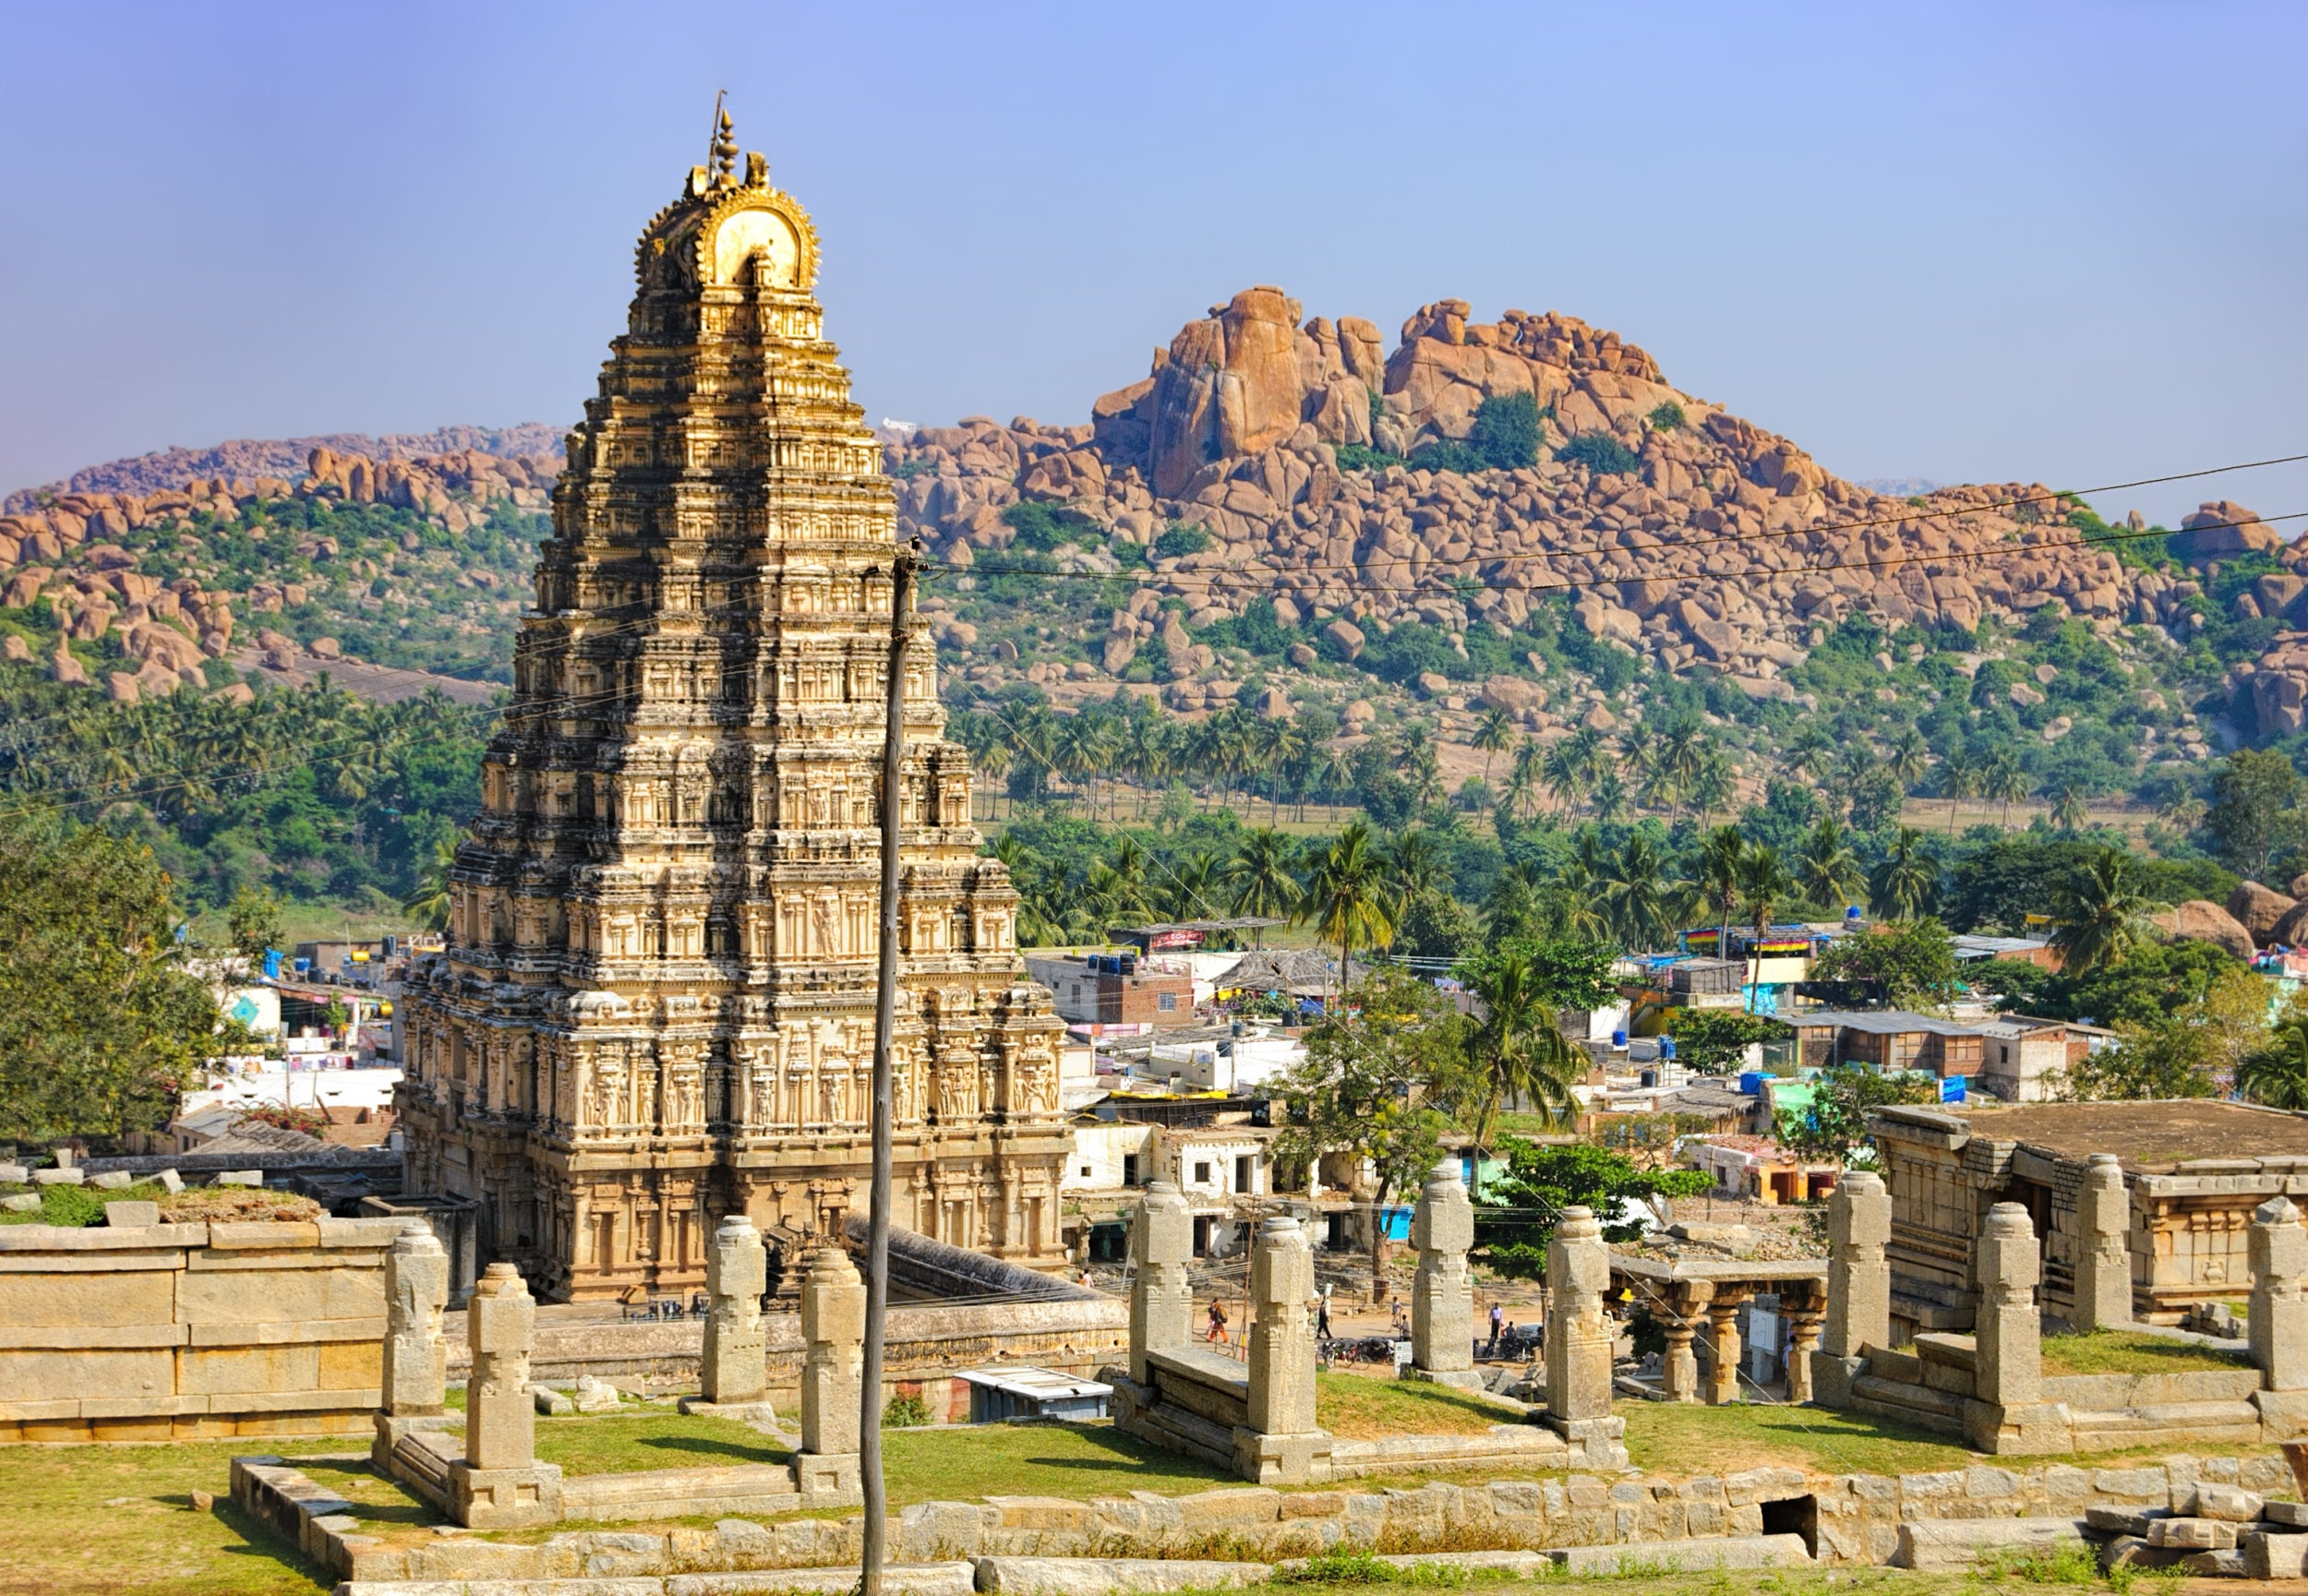 Hampi, India: An ancient archaeological complex becomes more accessible